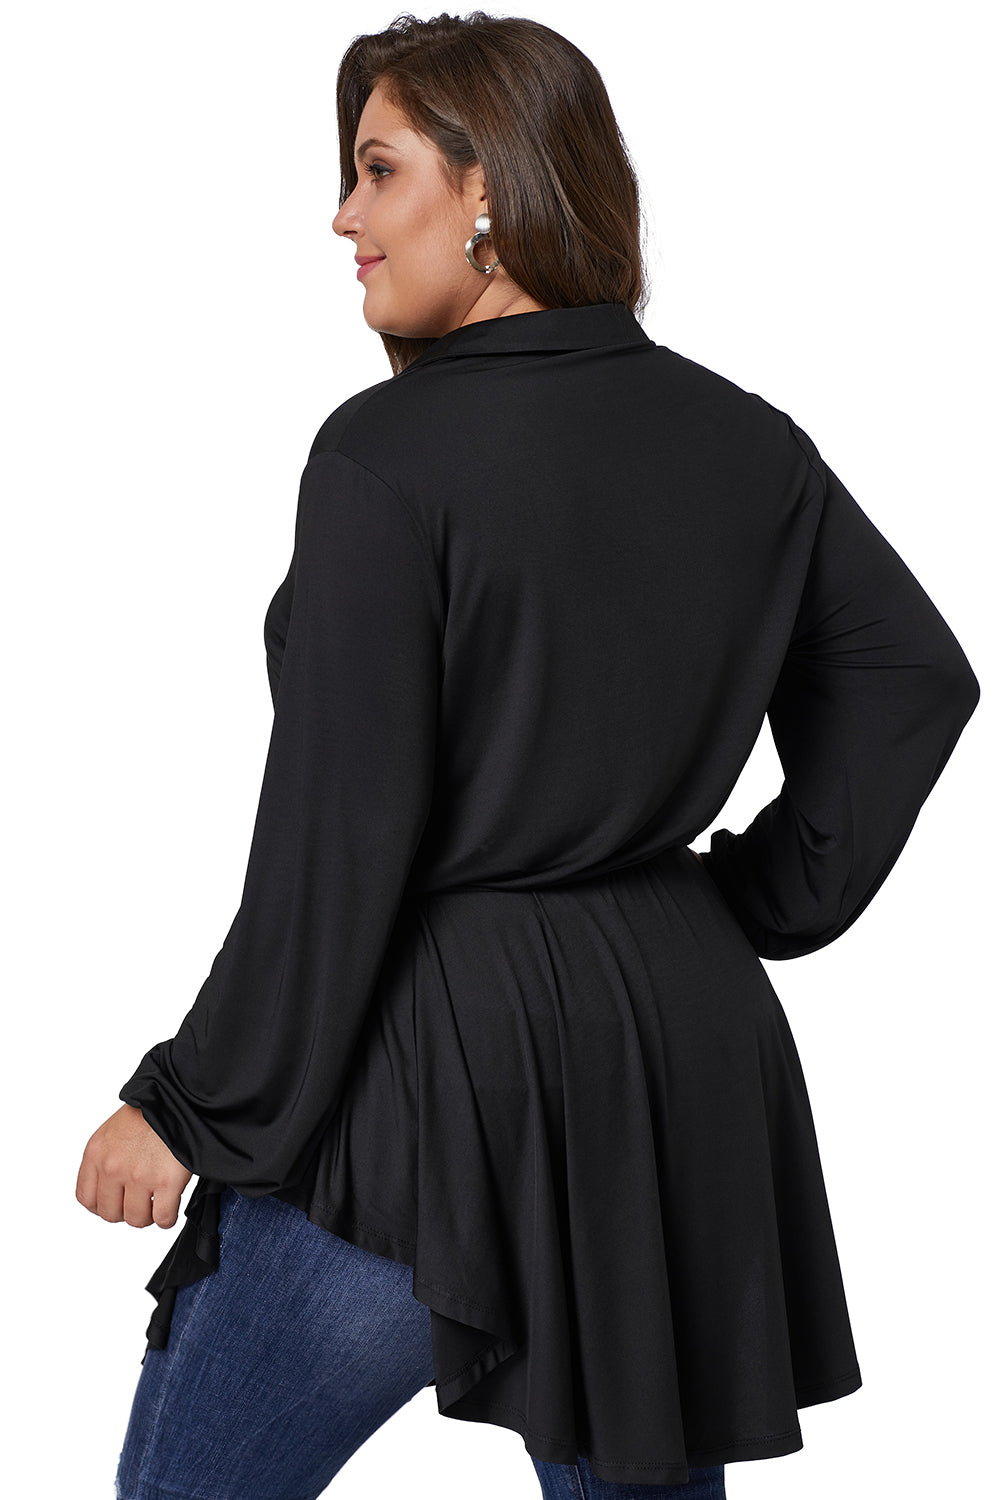 Solid Black Plus Size Tie Waist Top